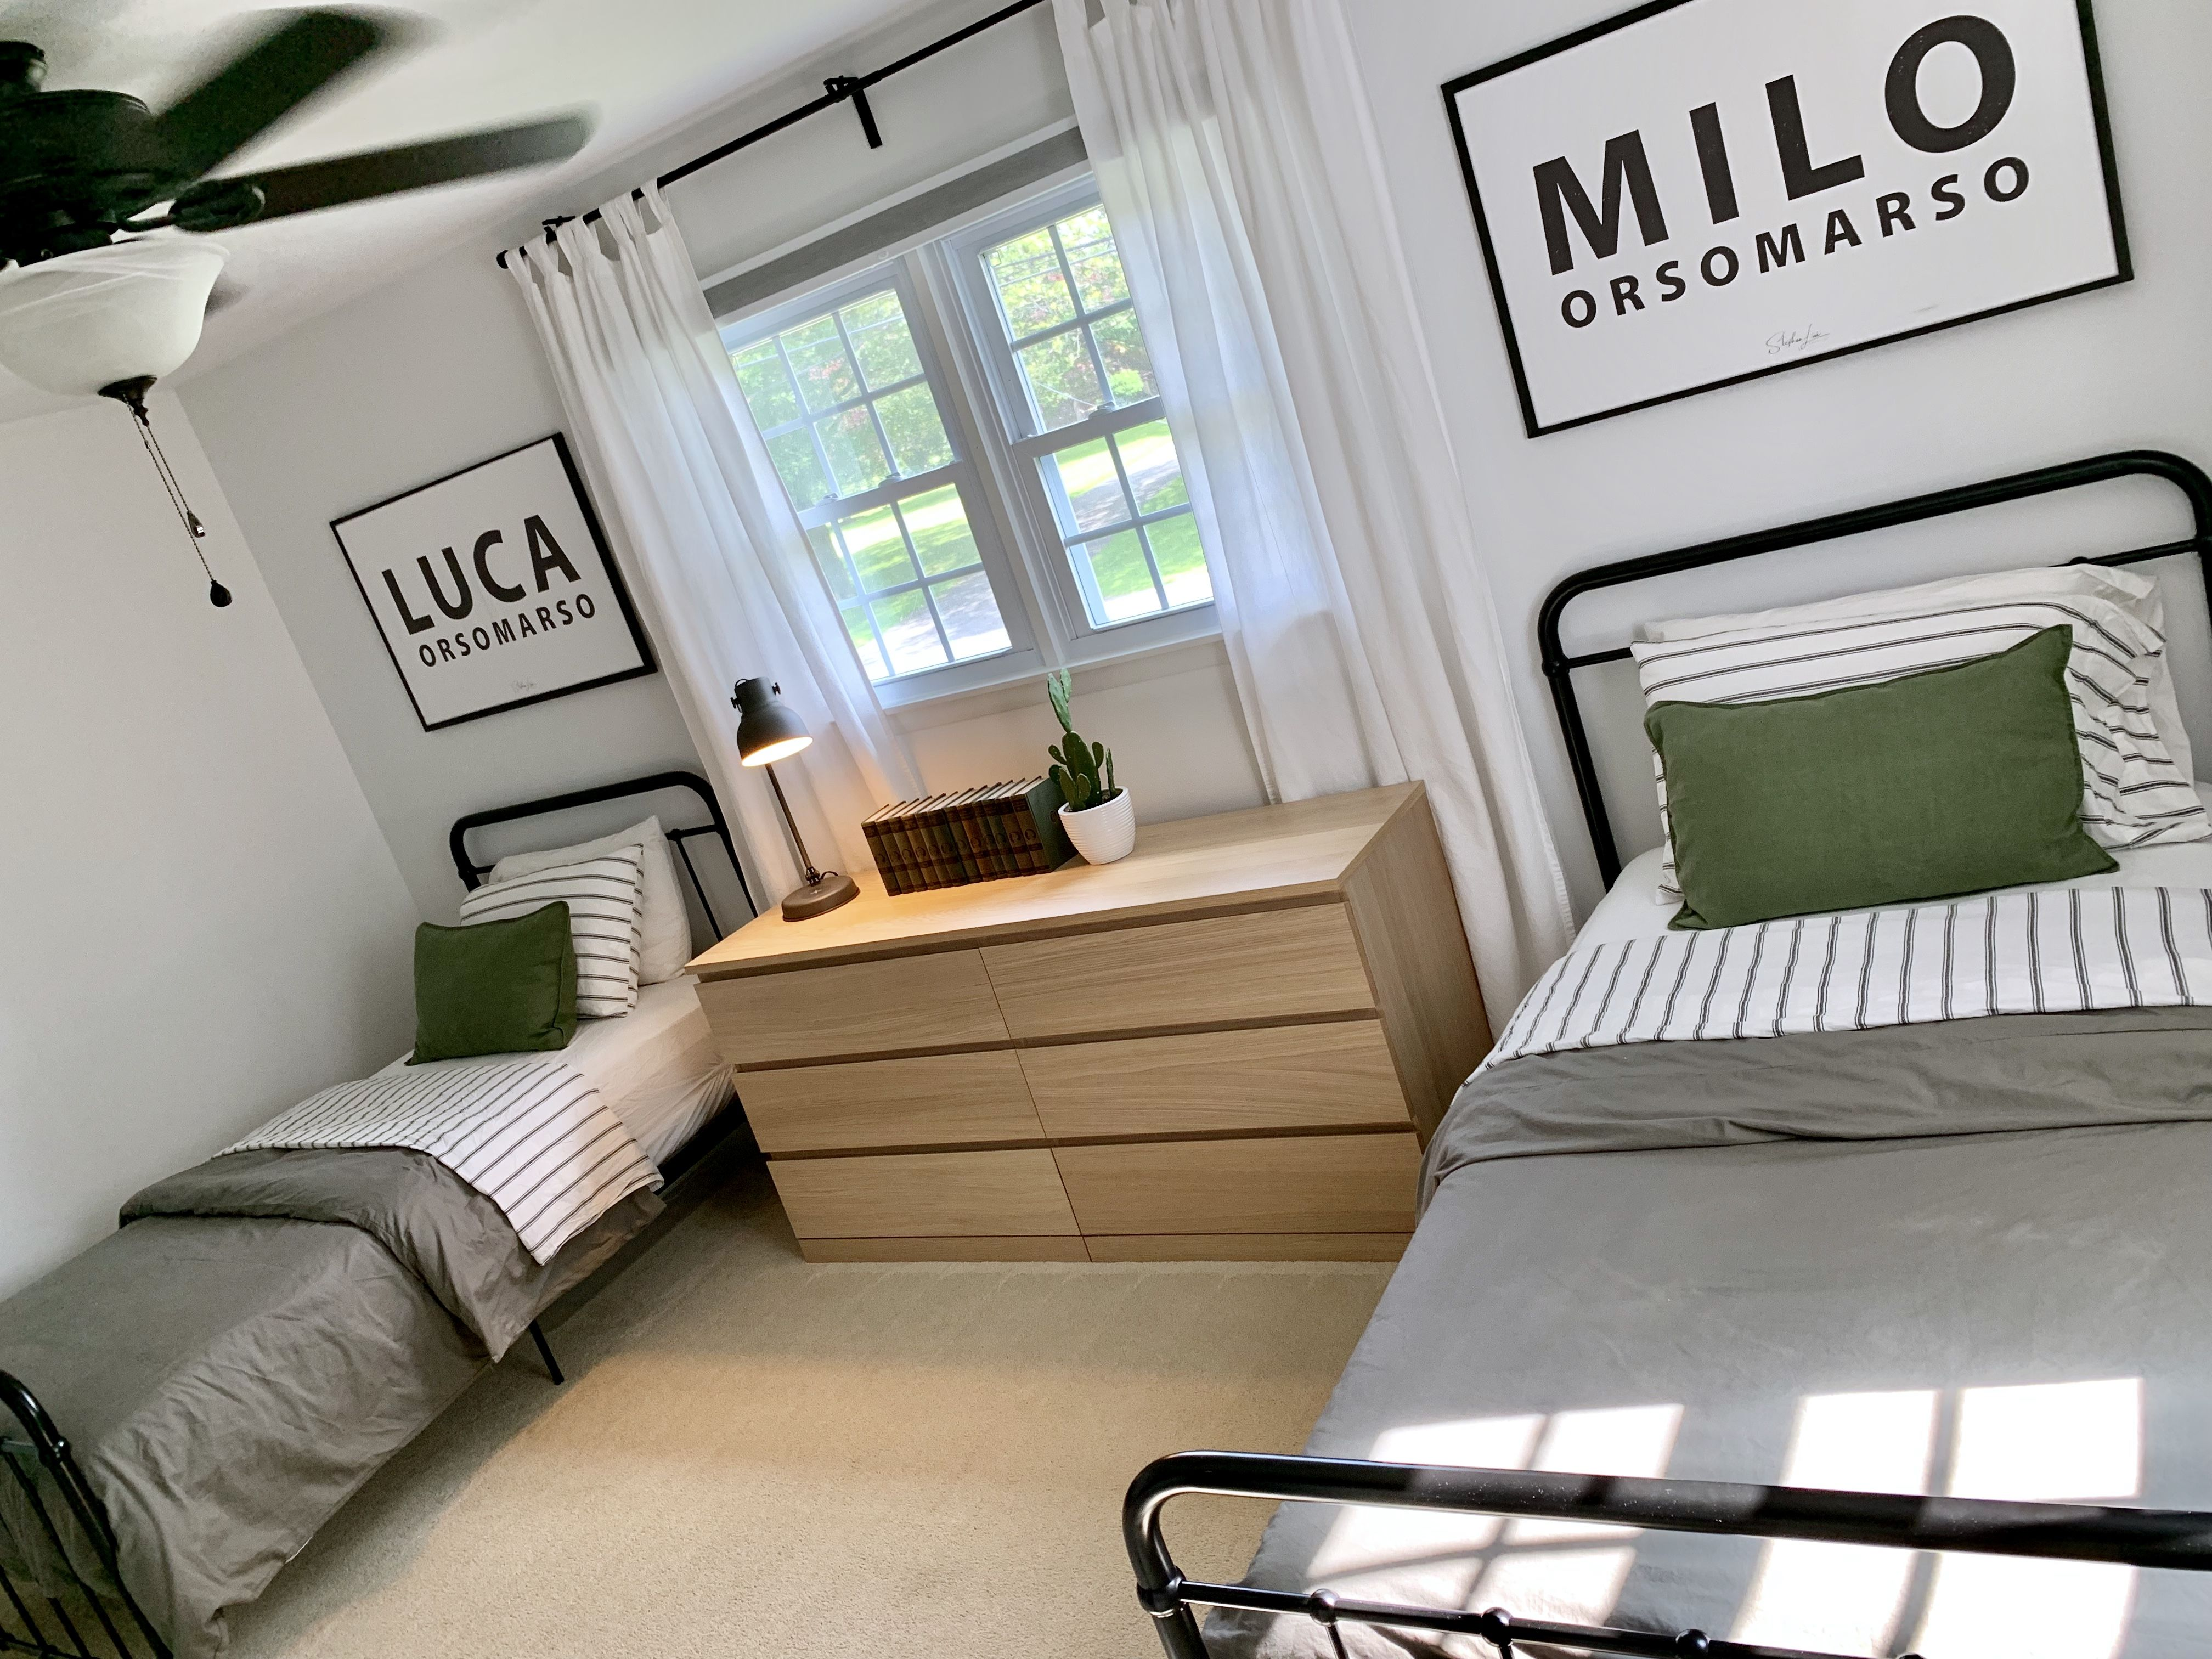 Bedroom For Boys Twin Wrought Iron Beds Ikea Malm White Oak Dresser Wrought Iron Beds Ikea Malm Bed Ikea Malm